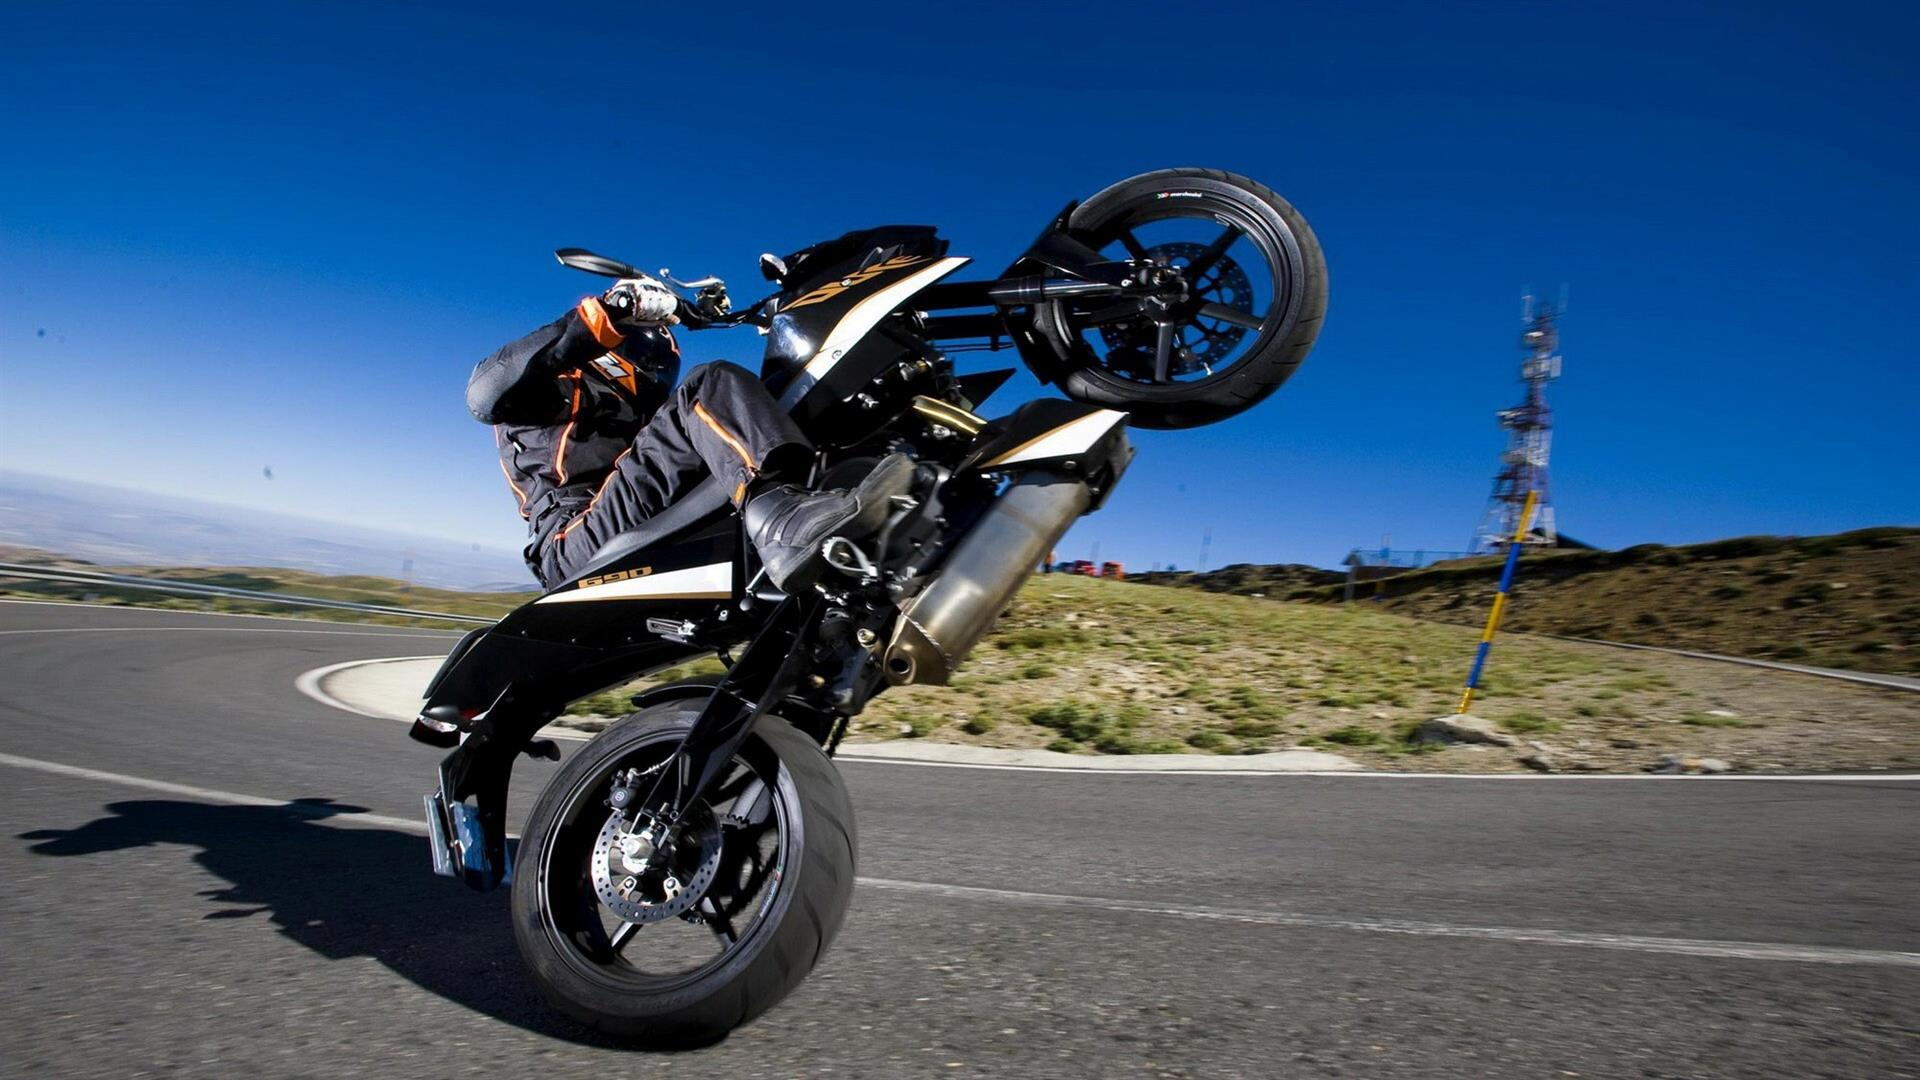 1920x1080 KTM Duke Bike Stunt on Road